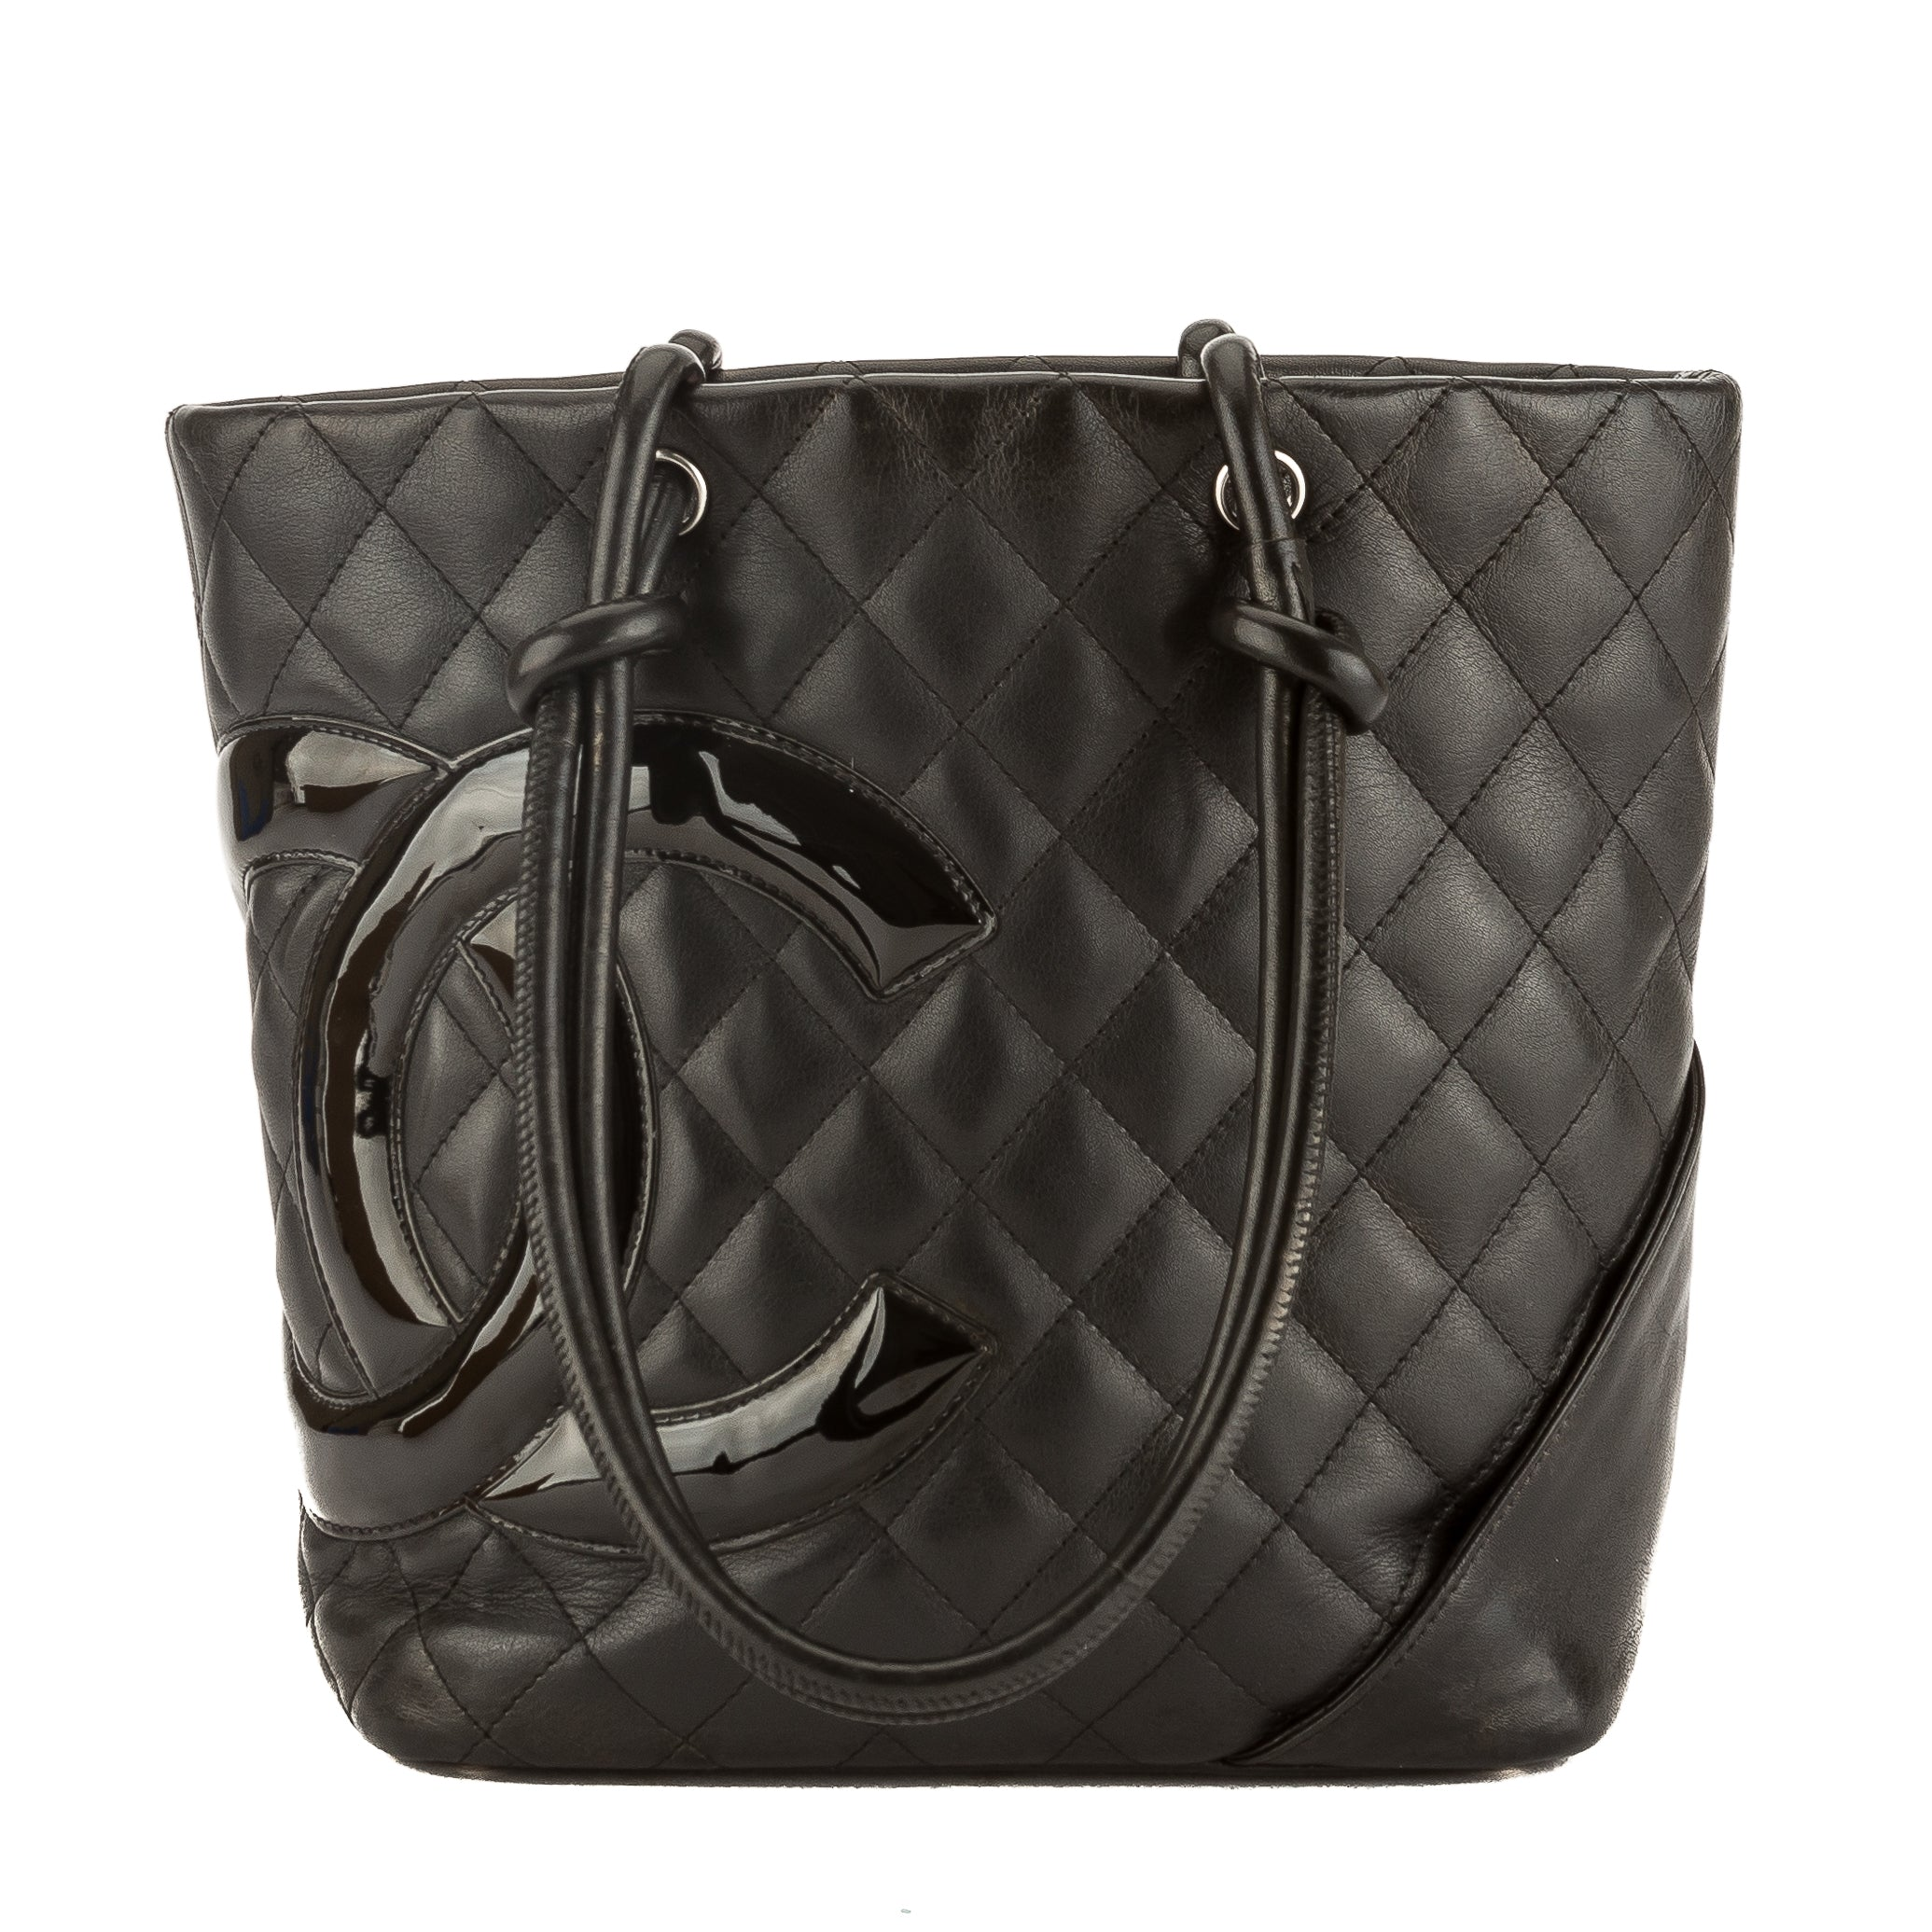 840670967217 Chanel Black Quilted Calfskin Leather Cambon Ligne Medium Tote Pre Owned